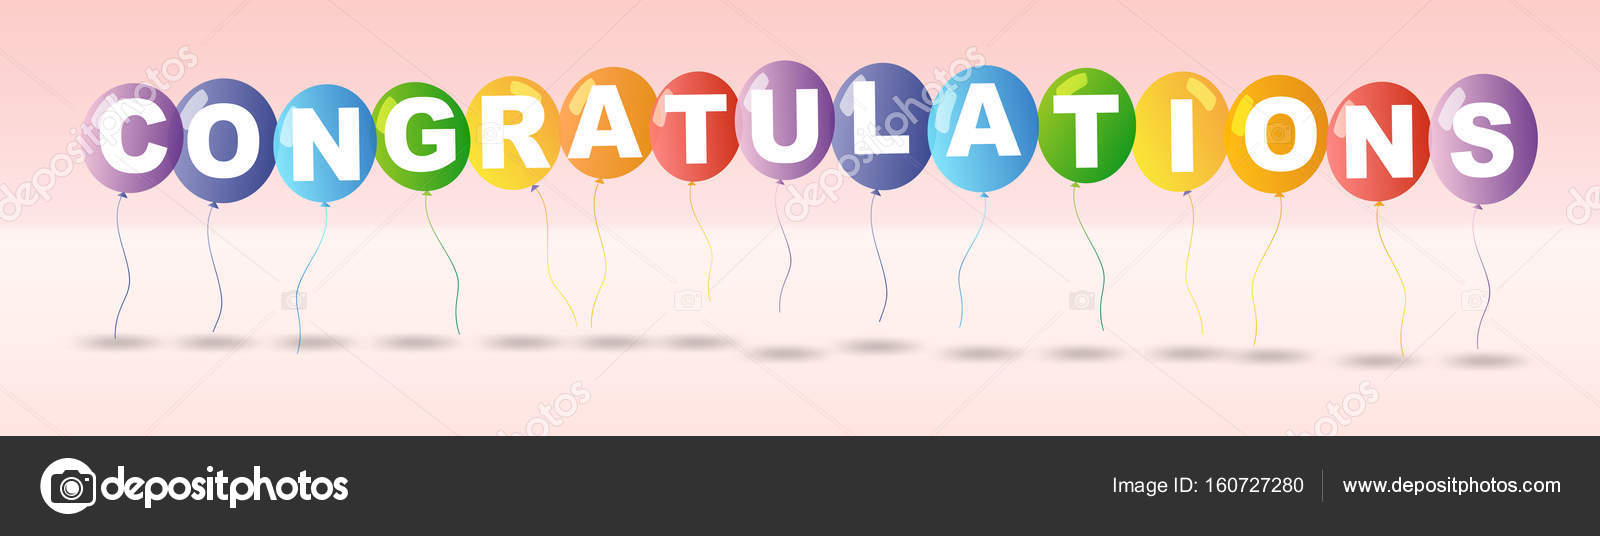 Congratulations card template with colorful balloons \u2014 Stock Vector